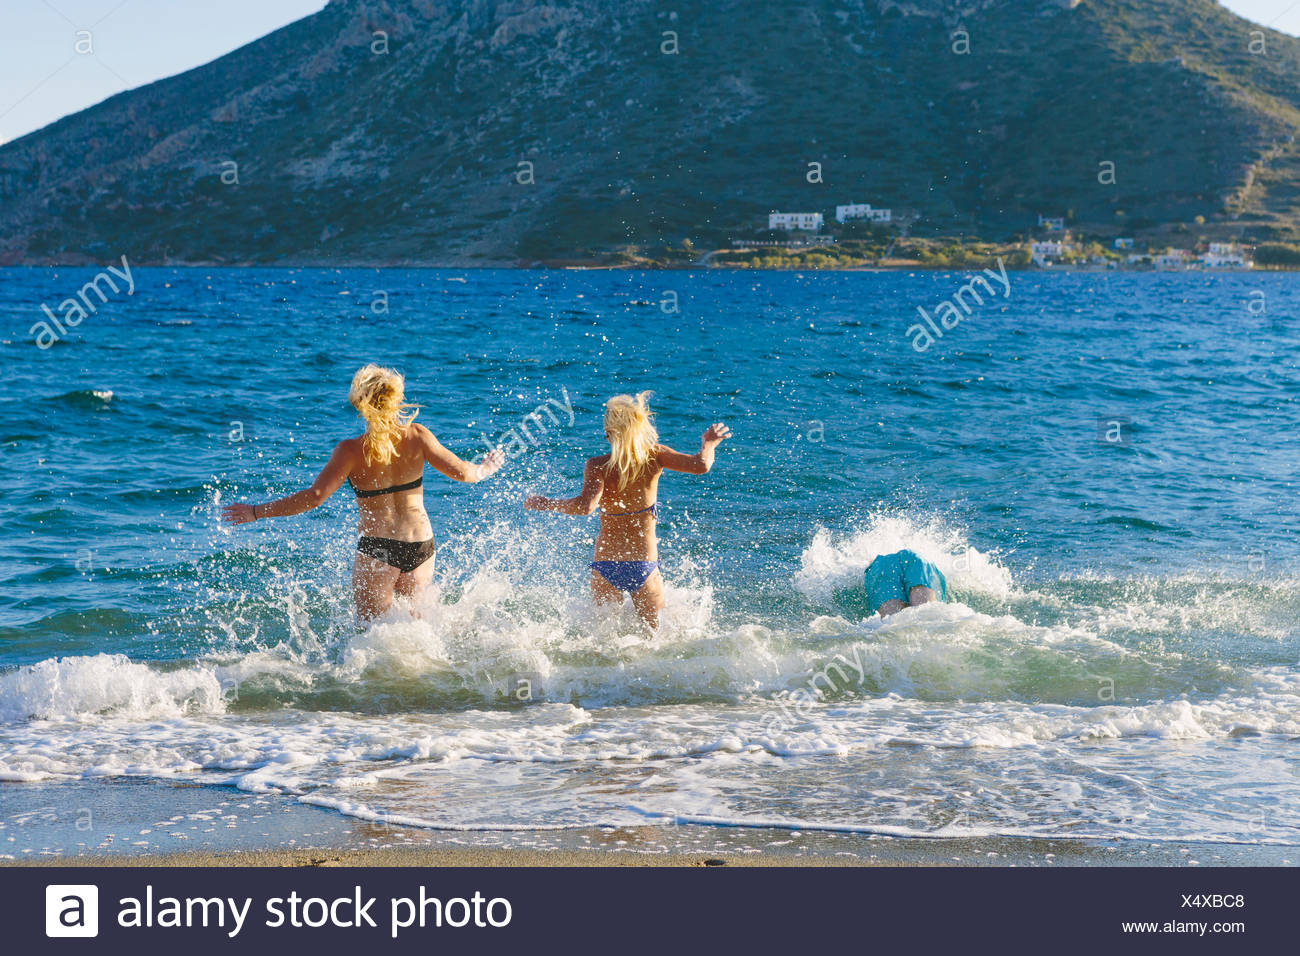 Greece, Dodecanese, Kalymnos, Two women running into sea - Stock Image